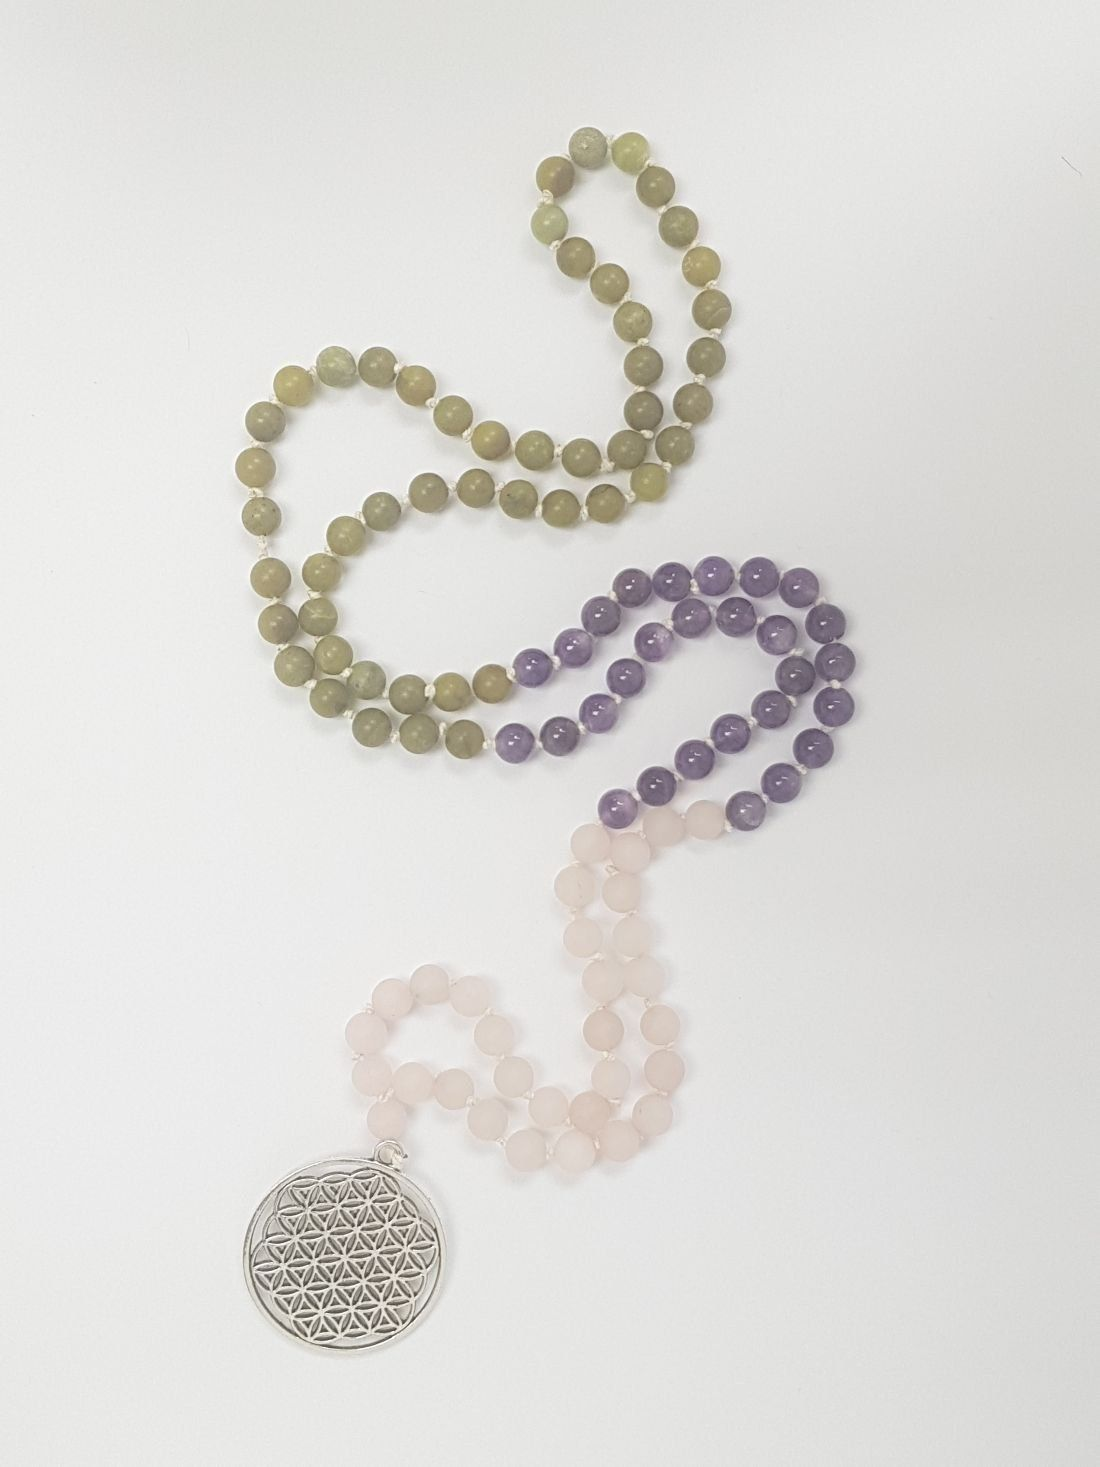 Knotted Mala Workshop